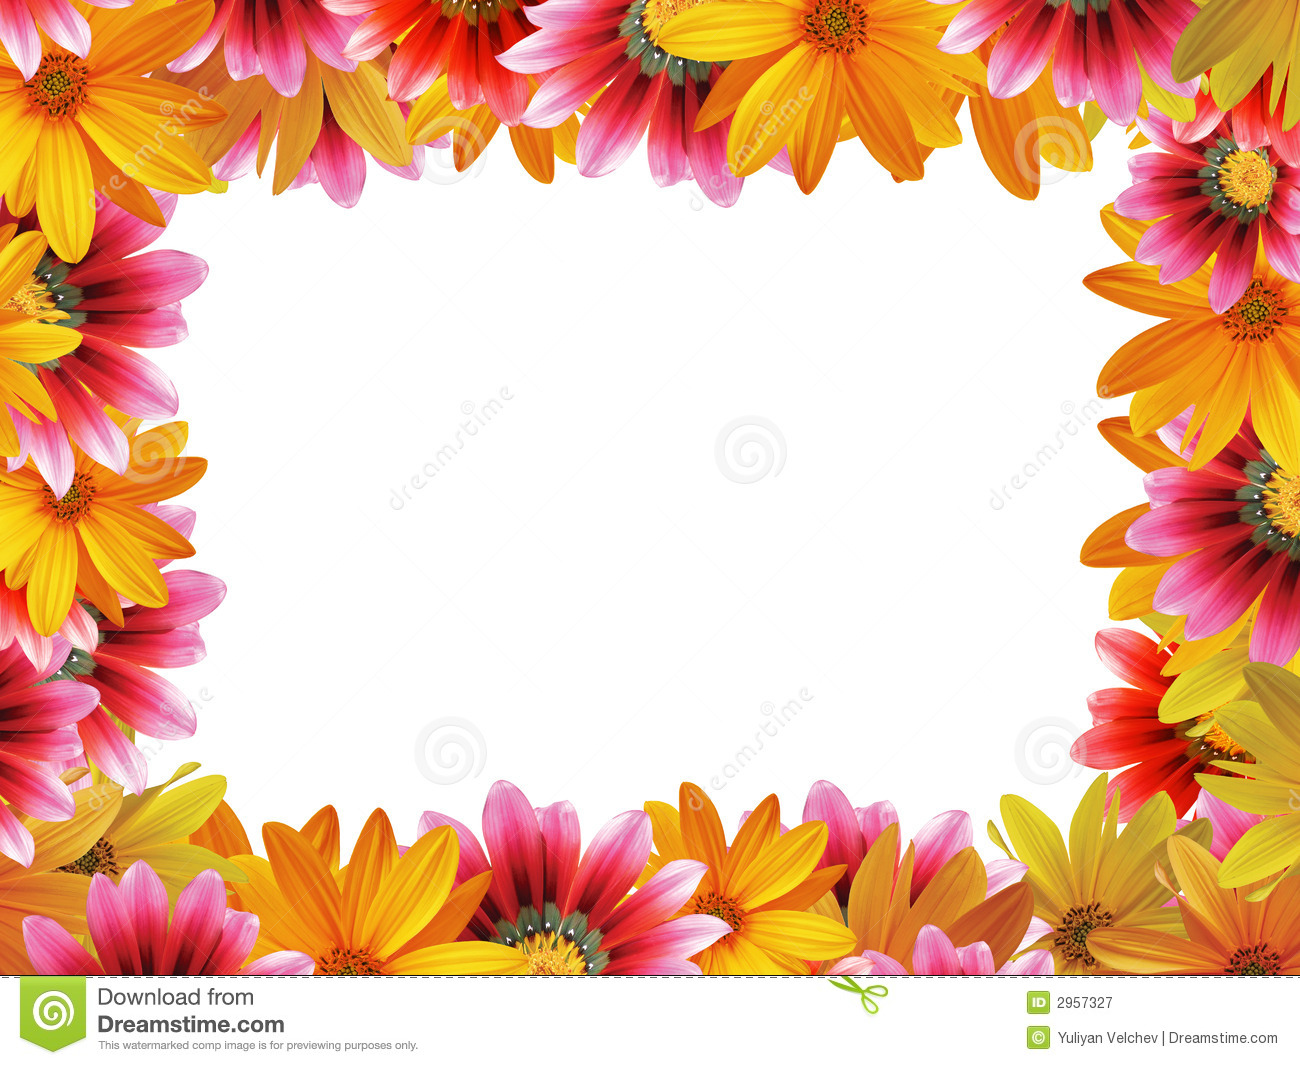 Flower frame 3 stock image. Image of beauty, color, border - 2957327